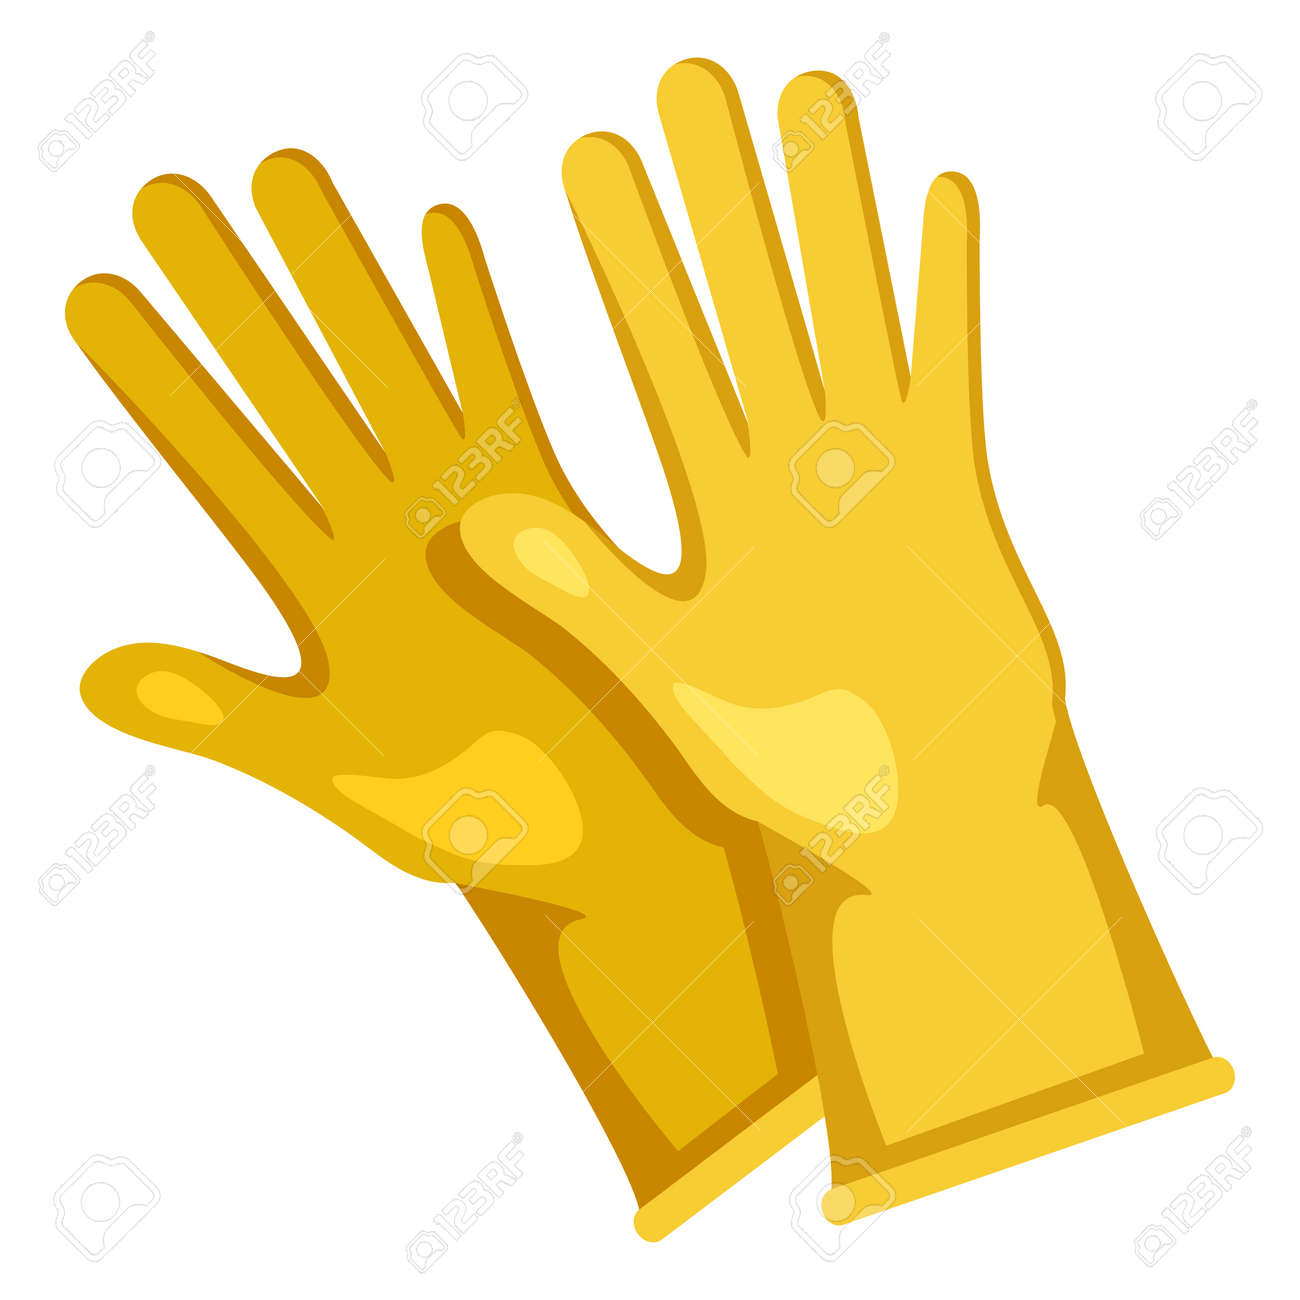 Rubber Gloves Color Icon on White background - 169351236